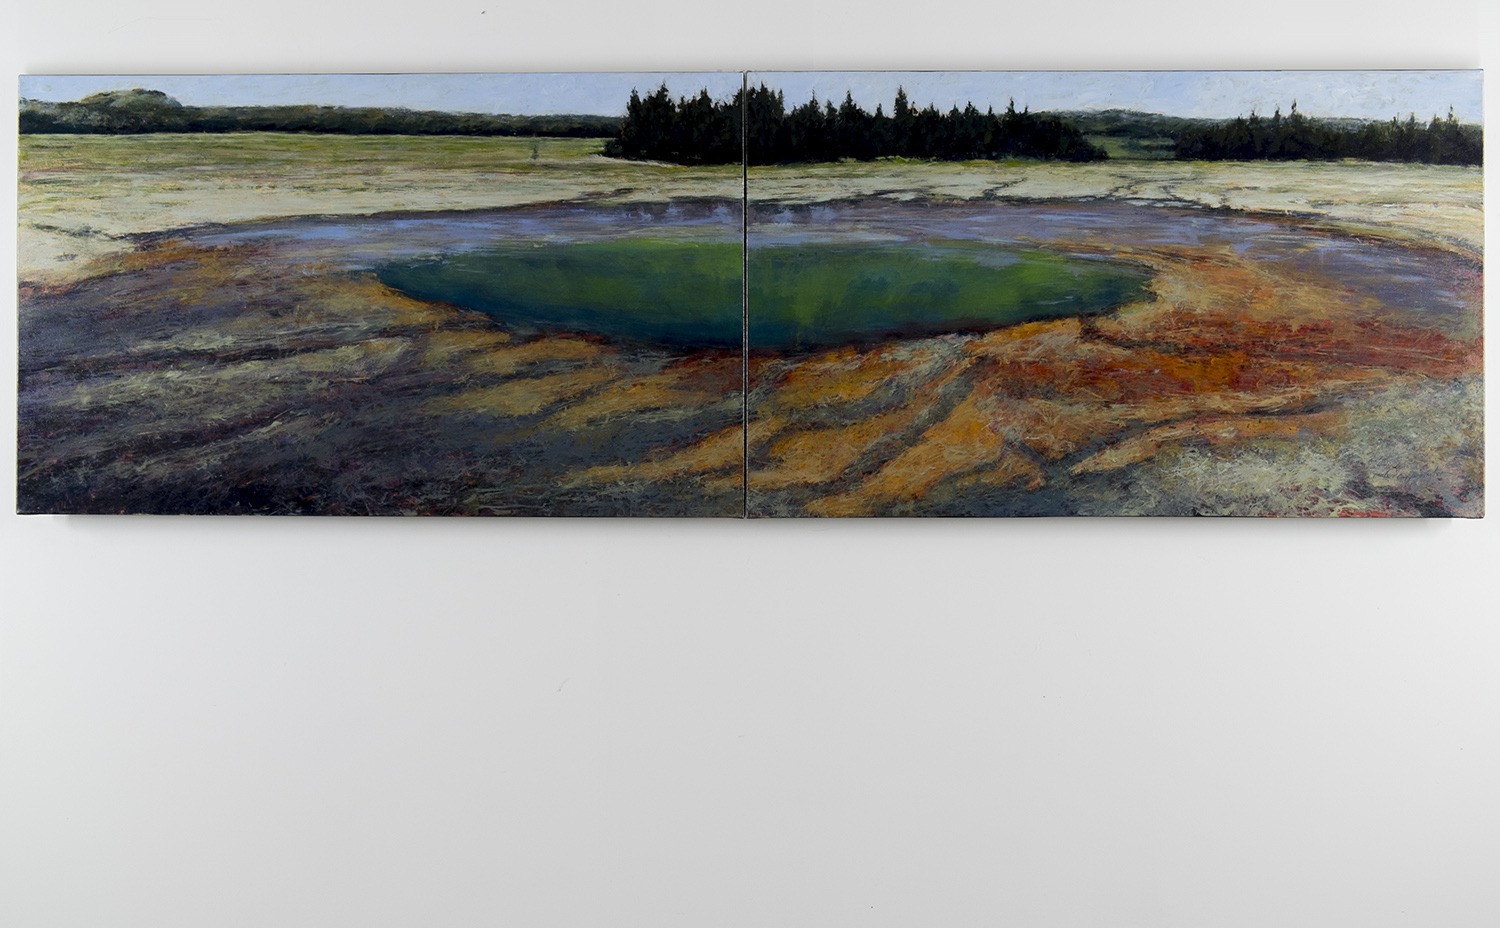 Grand Prismatic Hot Spring, 36 x 112 inches, diptych, oil on canvas. Available through the artist.